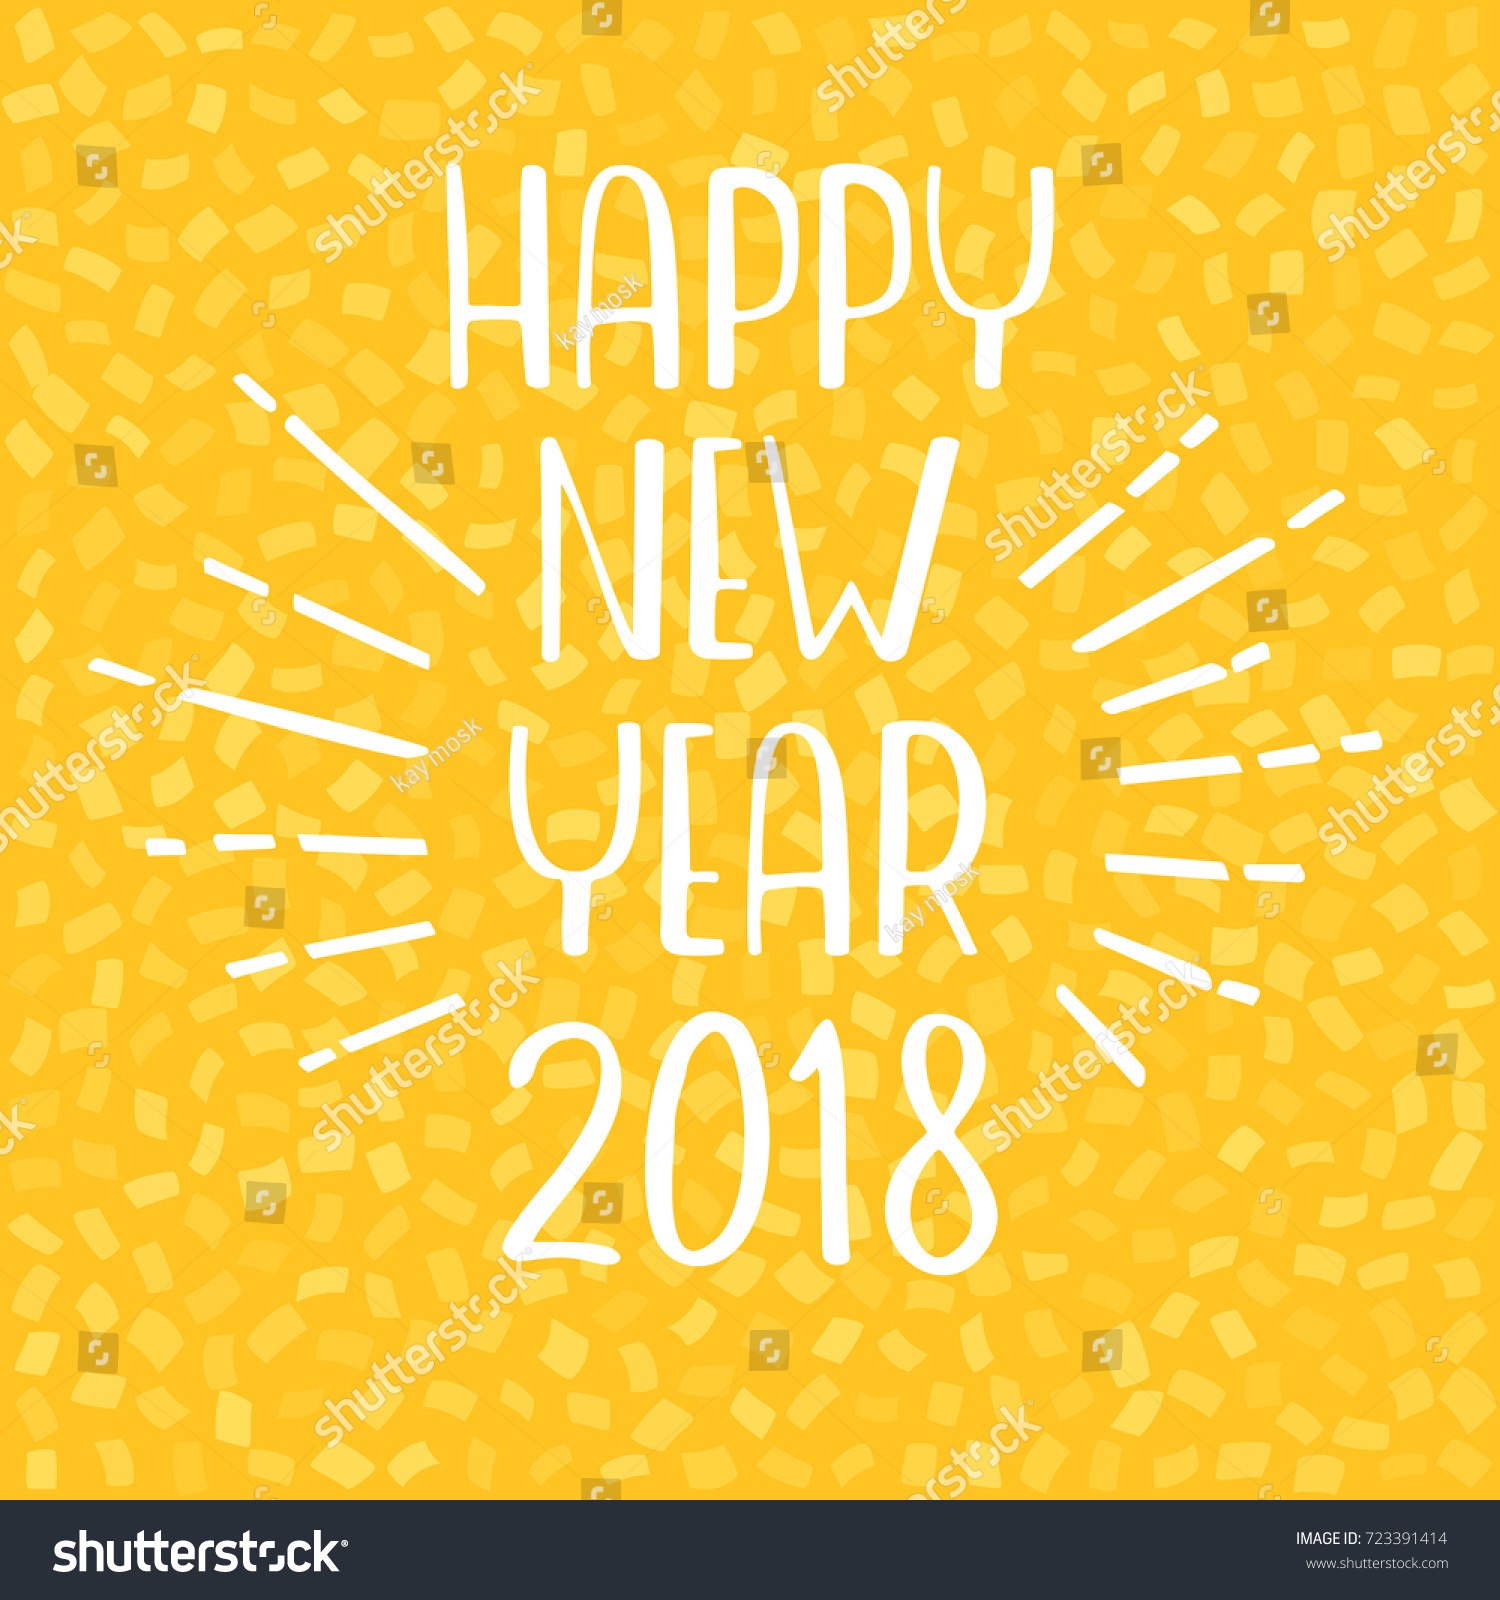 happy new year 2018 greeting card vector lettering on yellow background